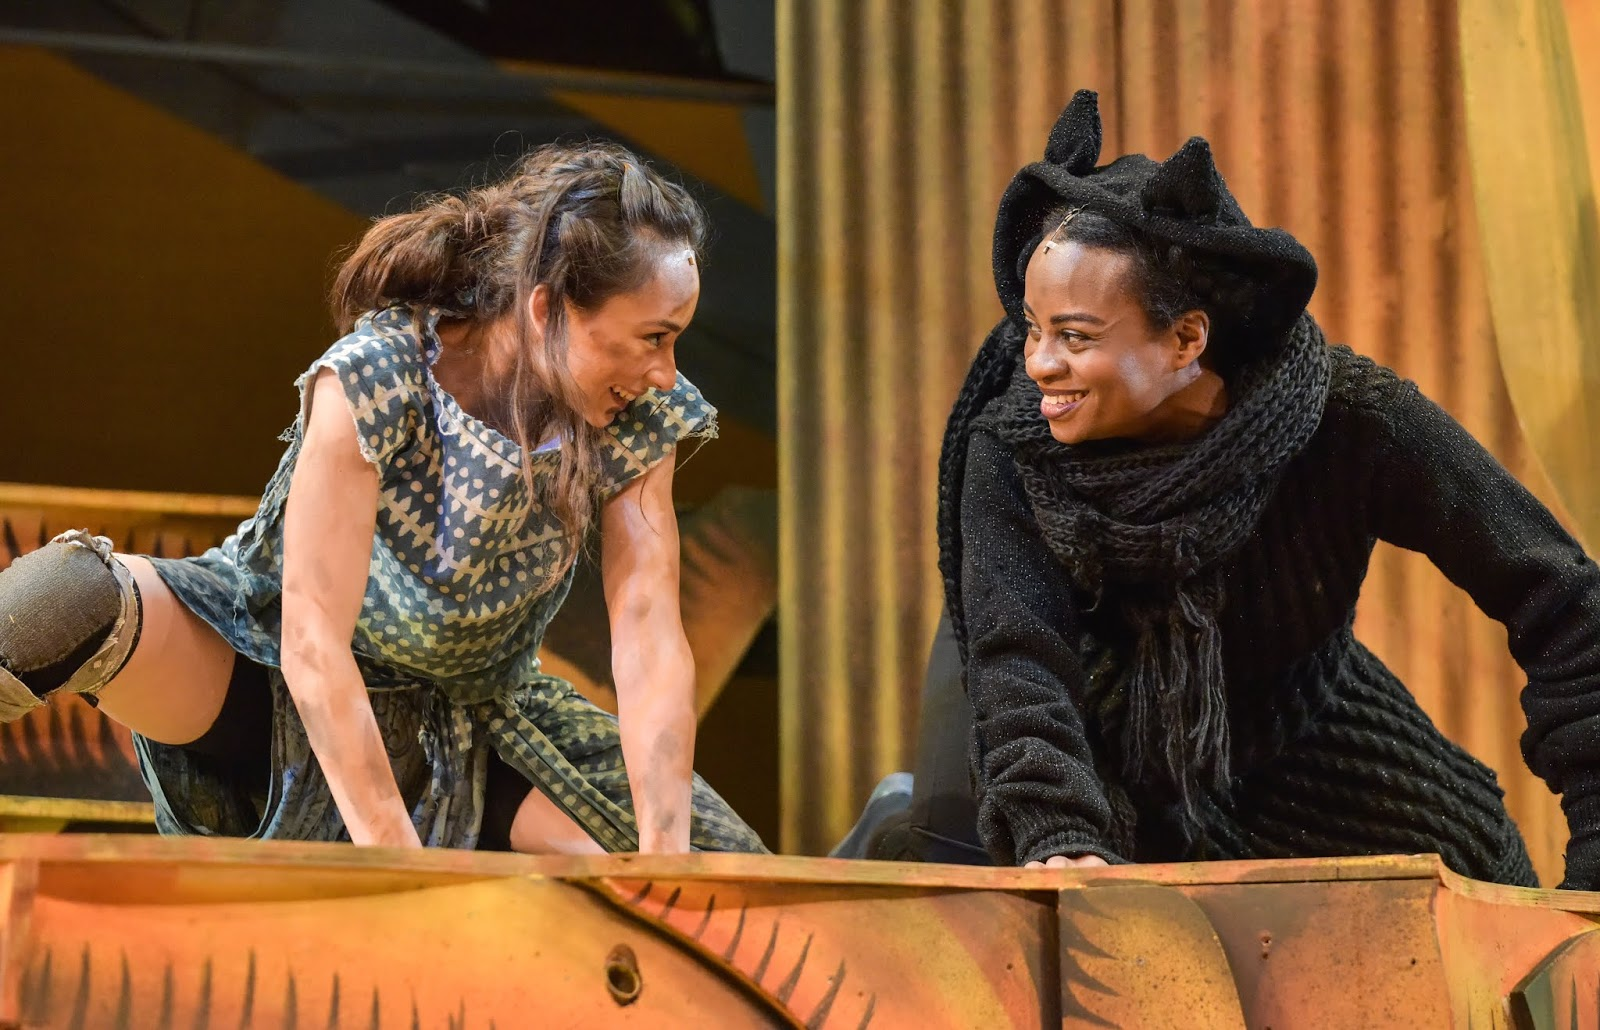 Iniki Mariano as Mowgli and Esme Sears as Bagheera, performing at Derby Theatre